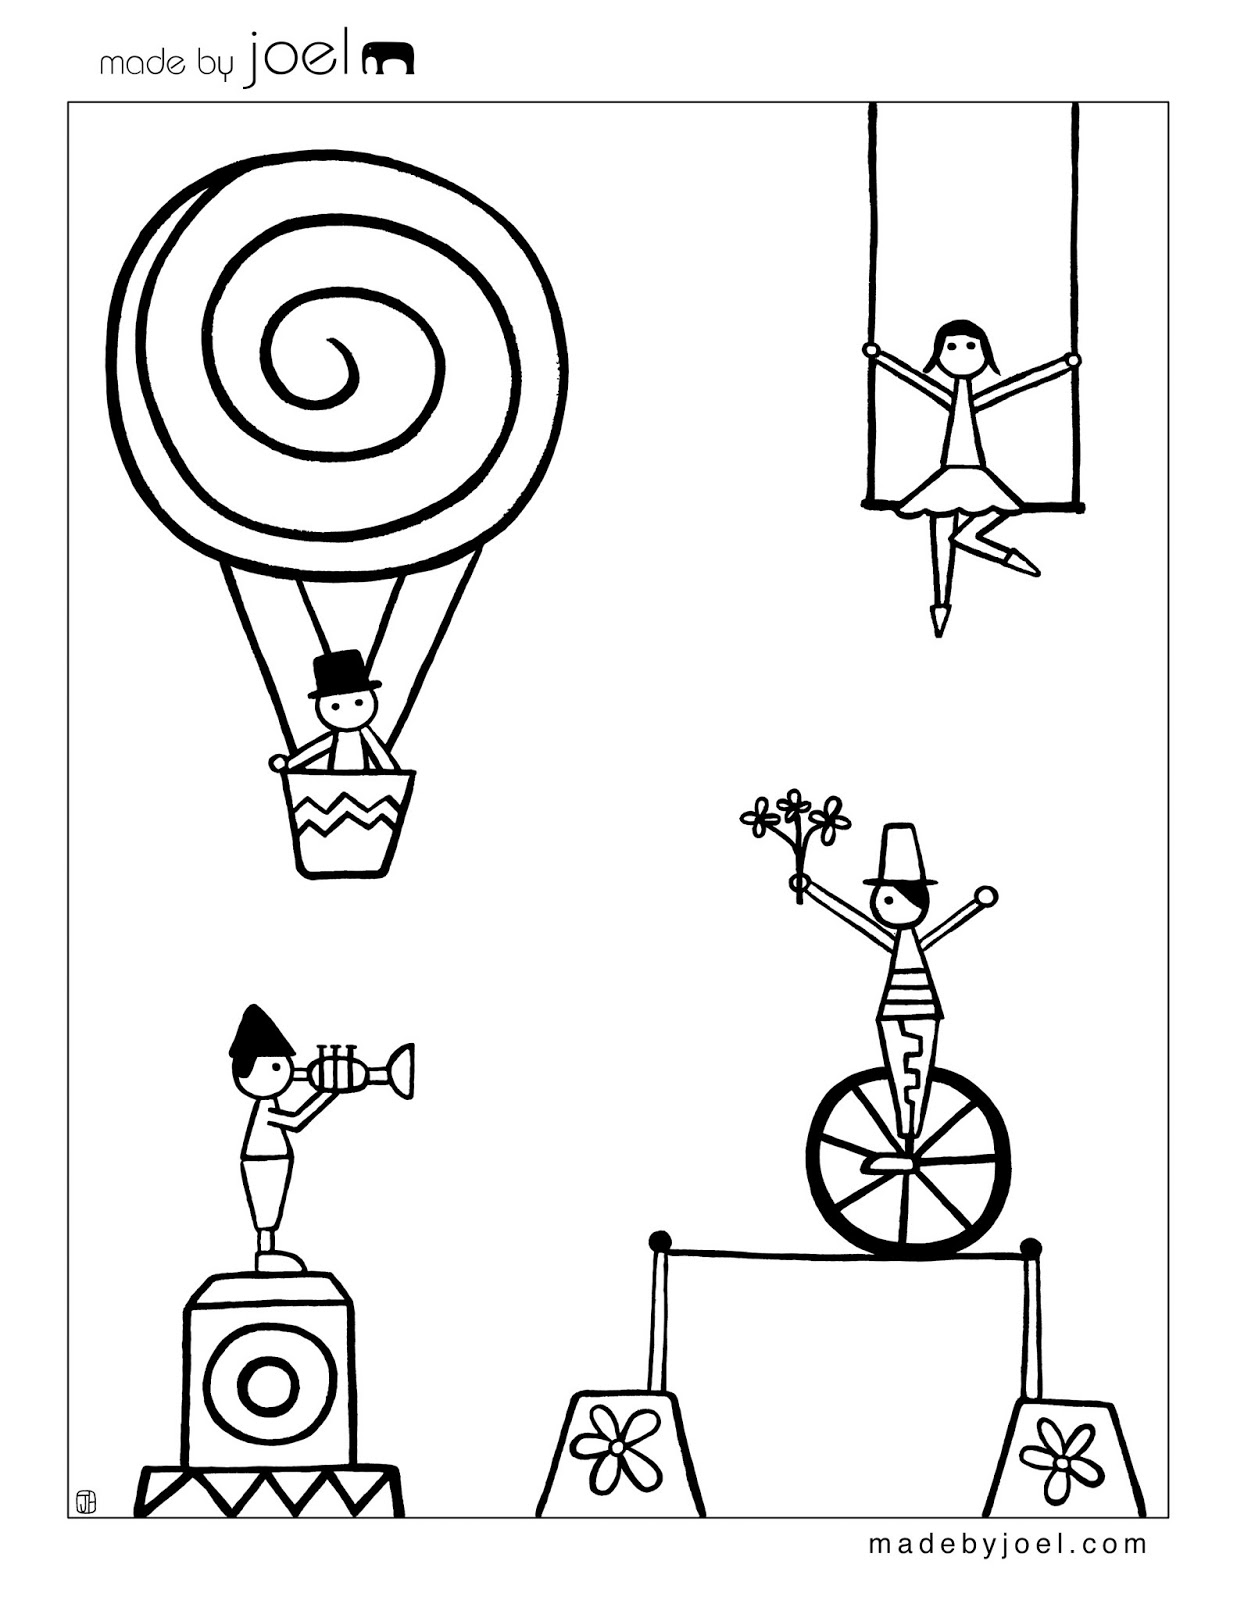 Be DifferentAct Normal Free Printable Circus Coloring